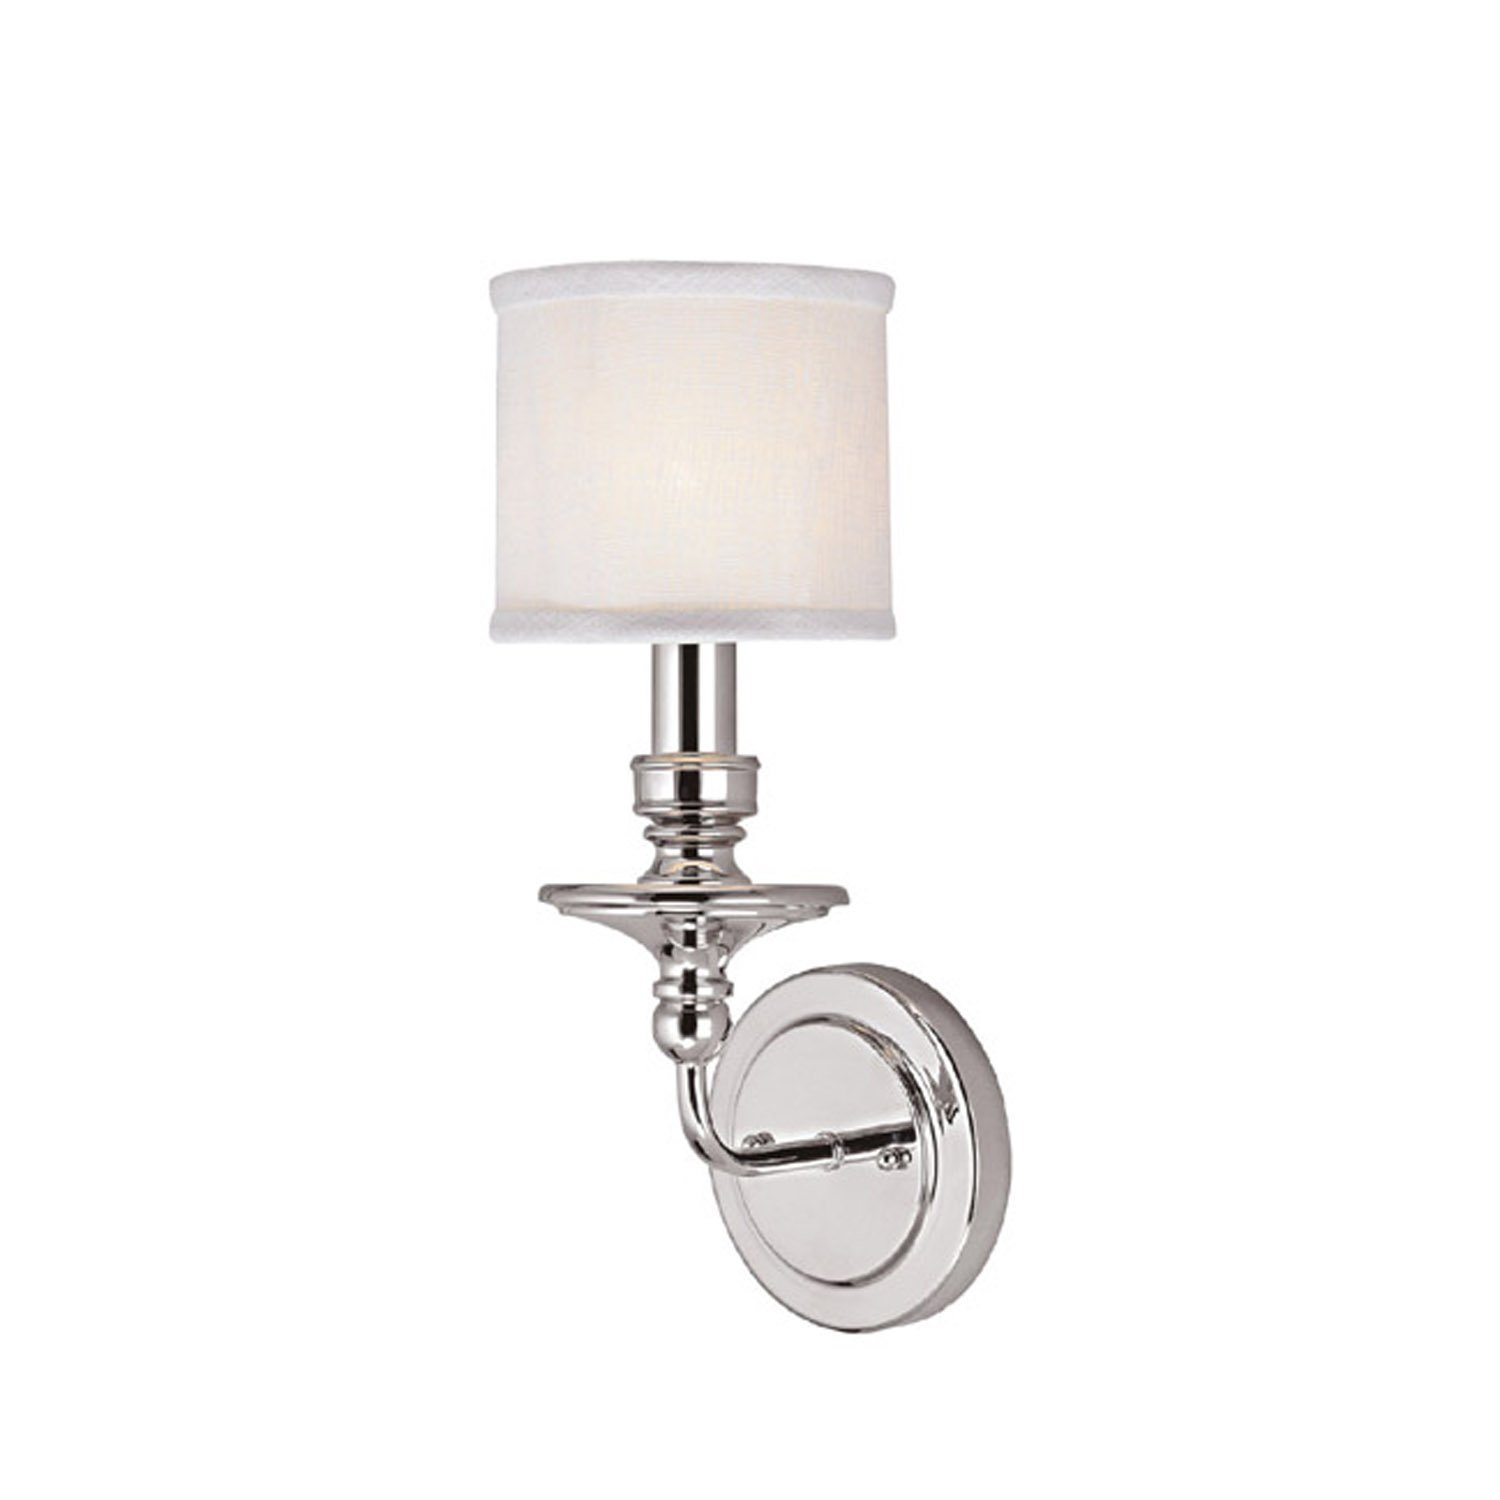 valley milan polished pn in lights hudson nickel sconces wall light sconce